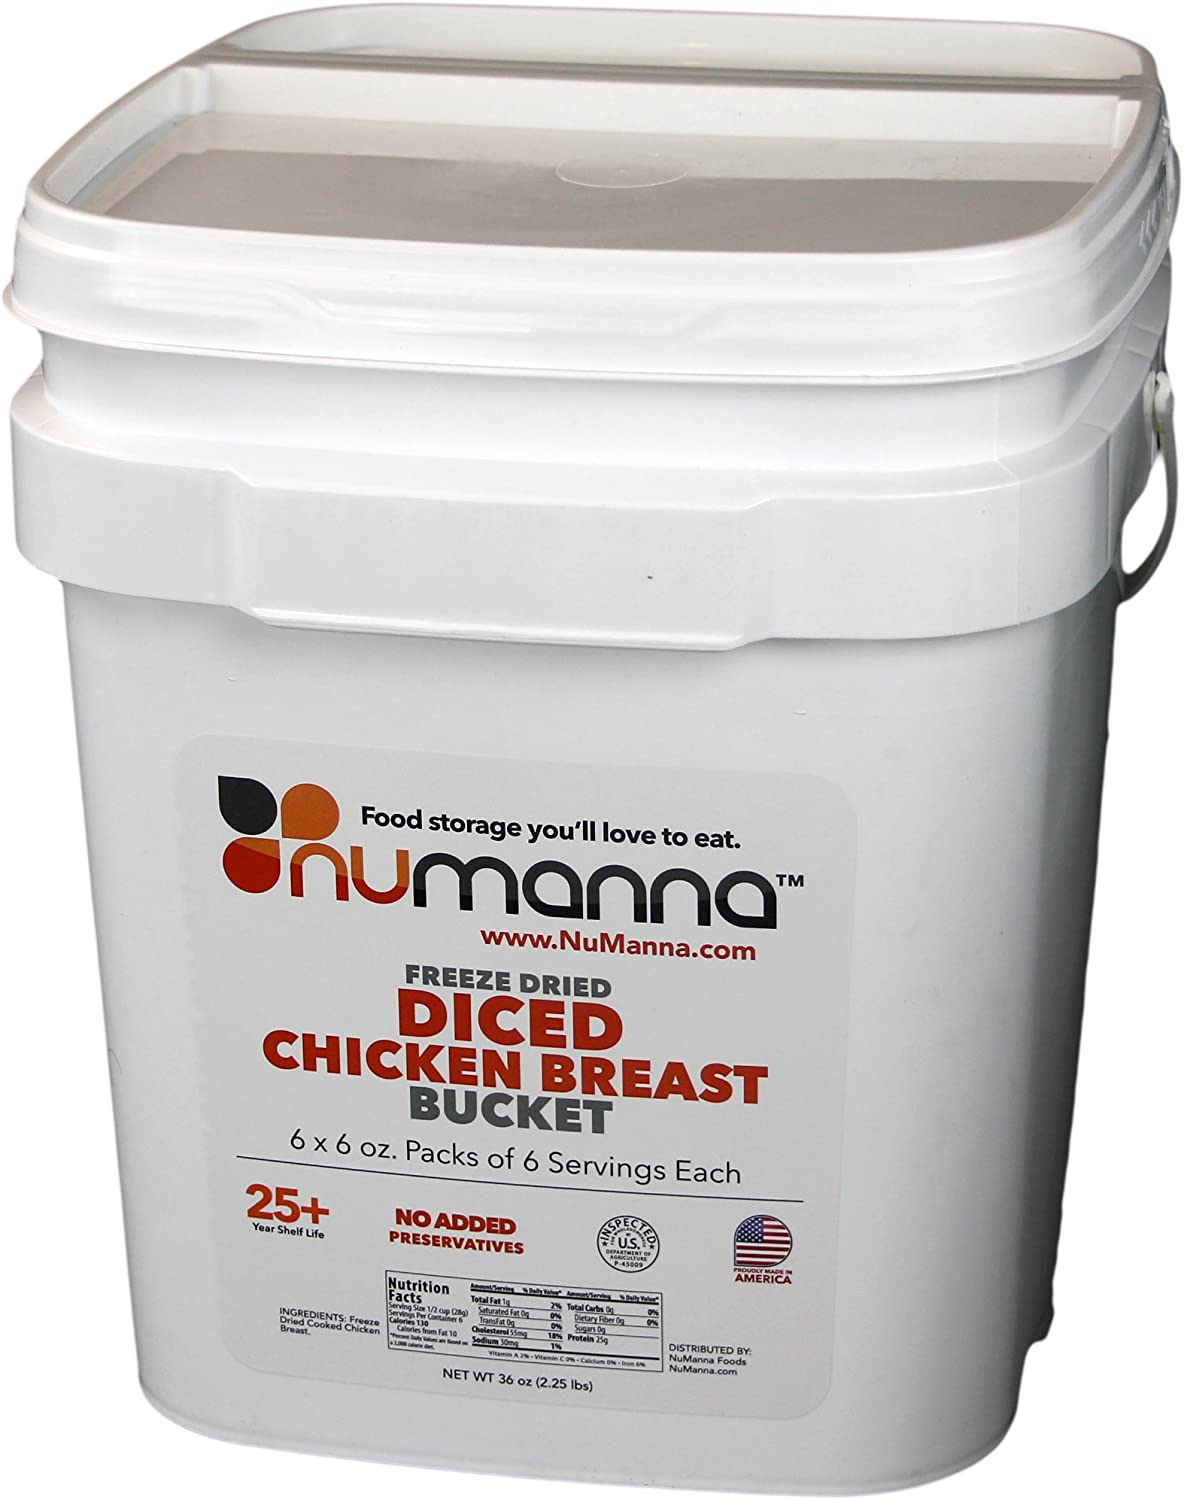 NuManna Diced Chicken Breast Bucket, 36 Servings - Emergency Survival Food Storage Kit, Separate Rations, in a Bucket, 25 Plus Year Shelf Life, GMO-Free